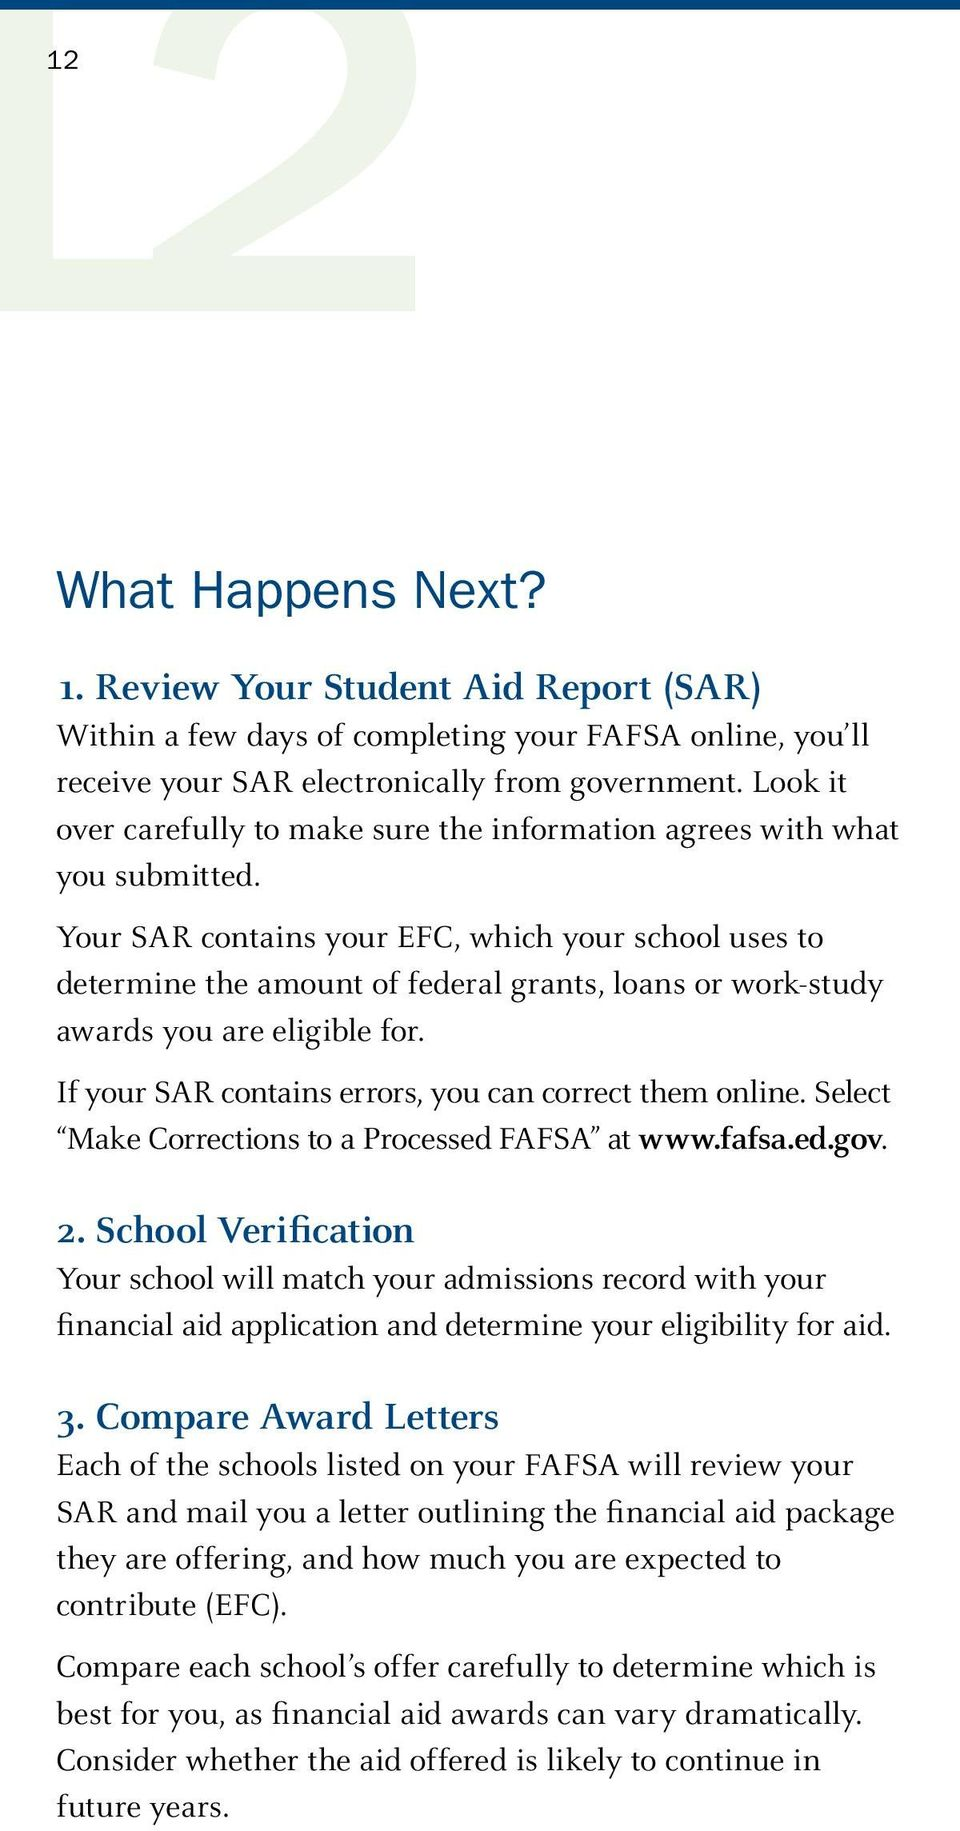 Your SAR contains your EFC, which your school uses to determine the amount of federal grants, loans or work-study awards you are eligible for. If your SAR contains errors, you can correct them online.